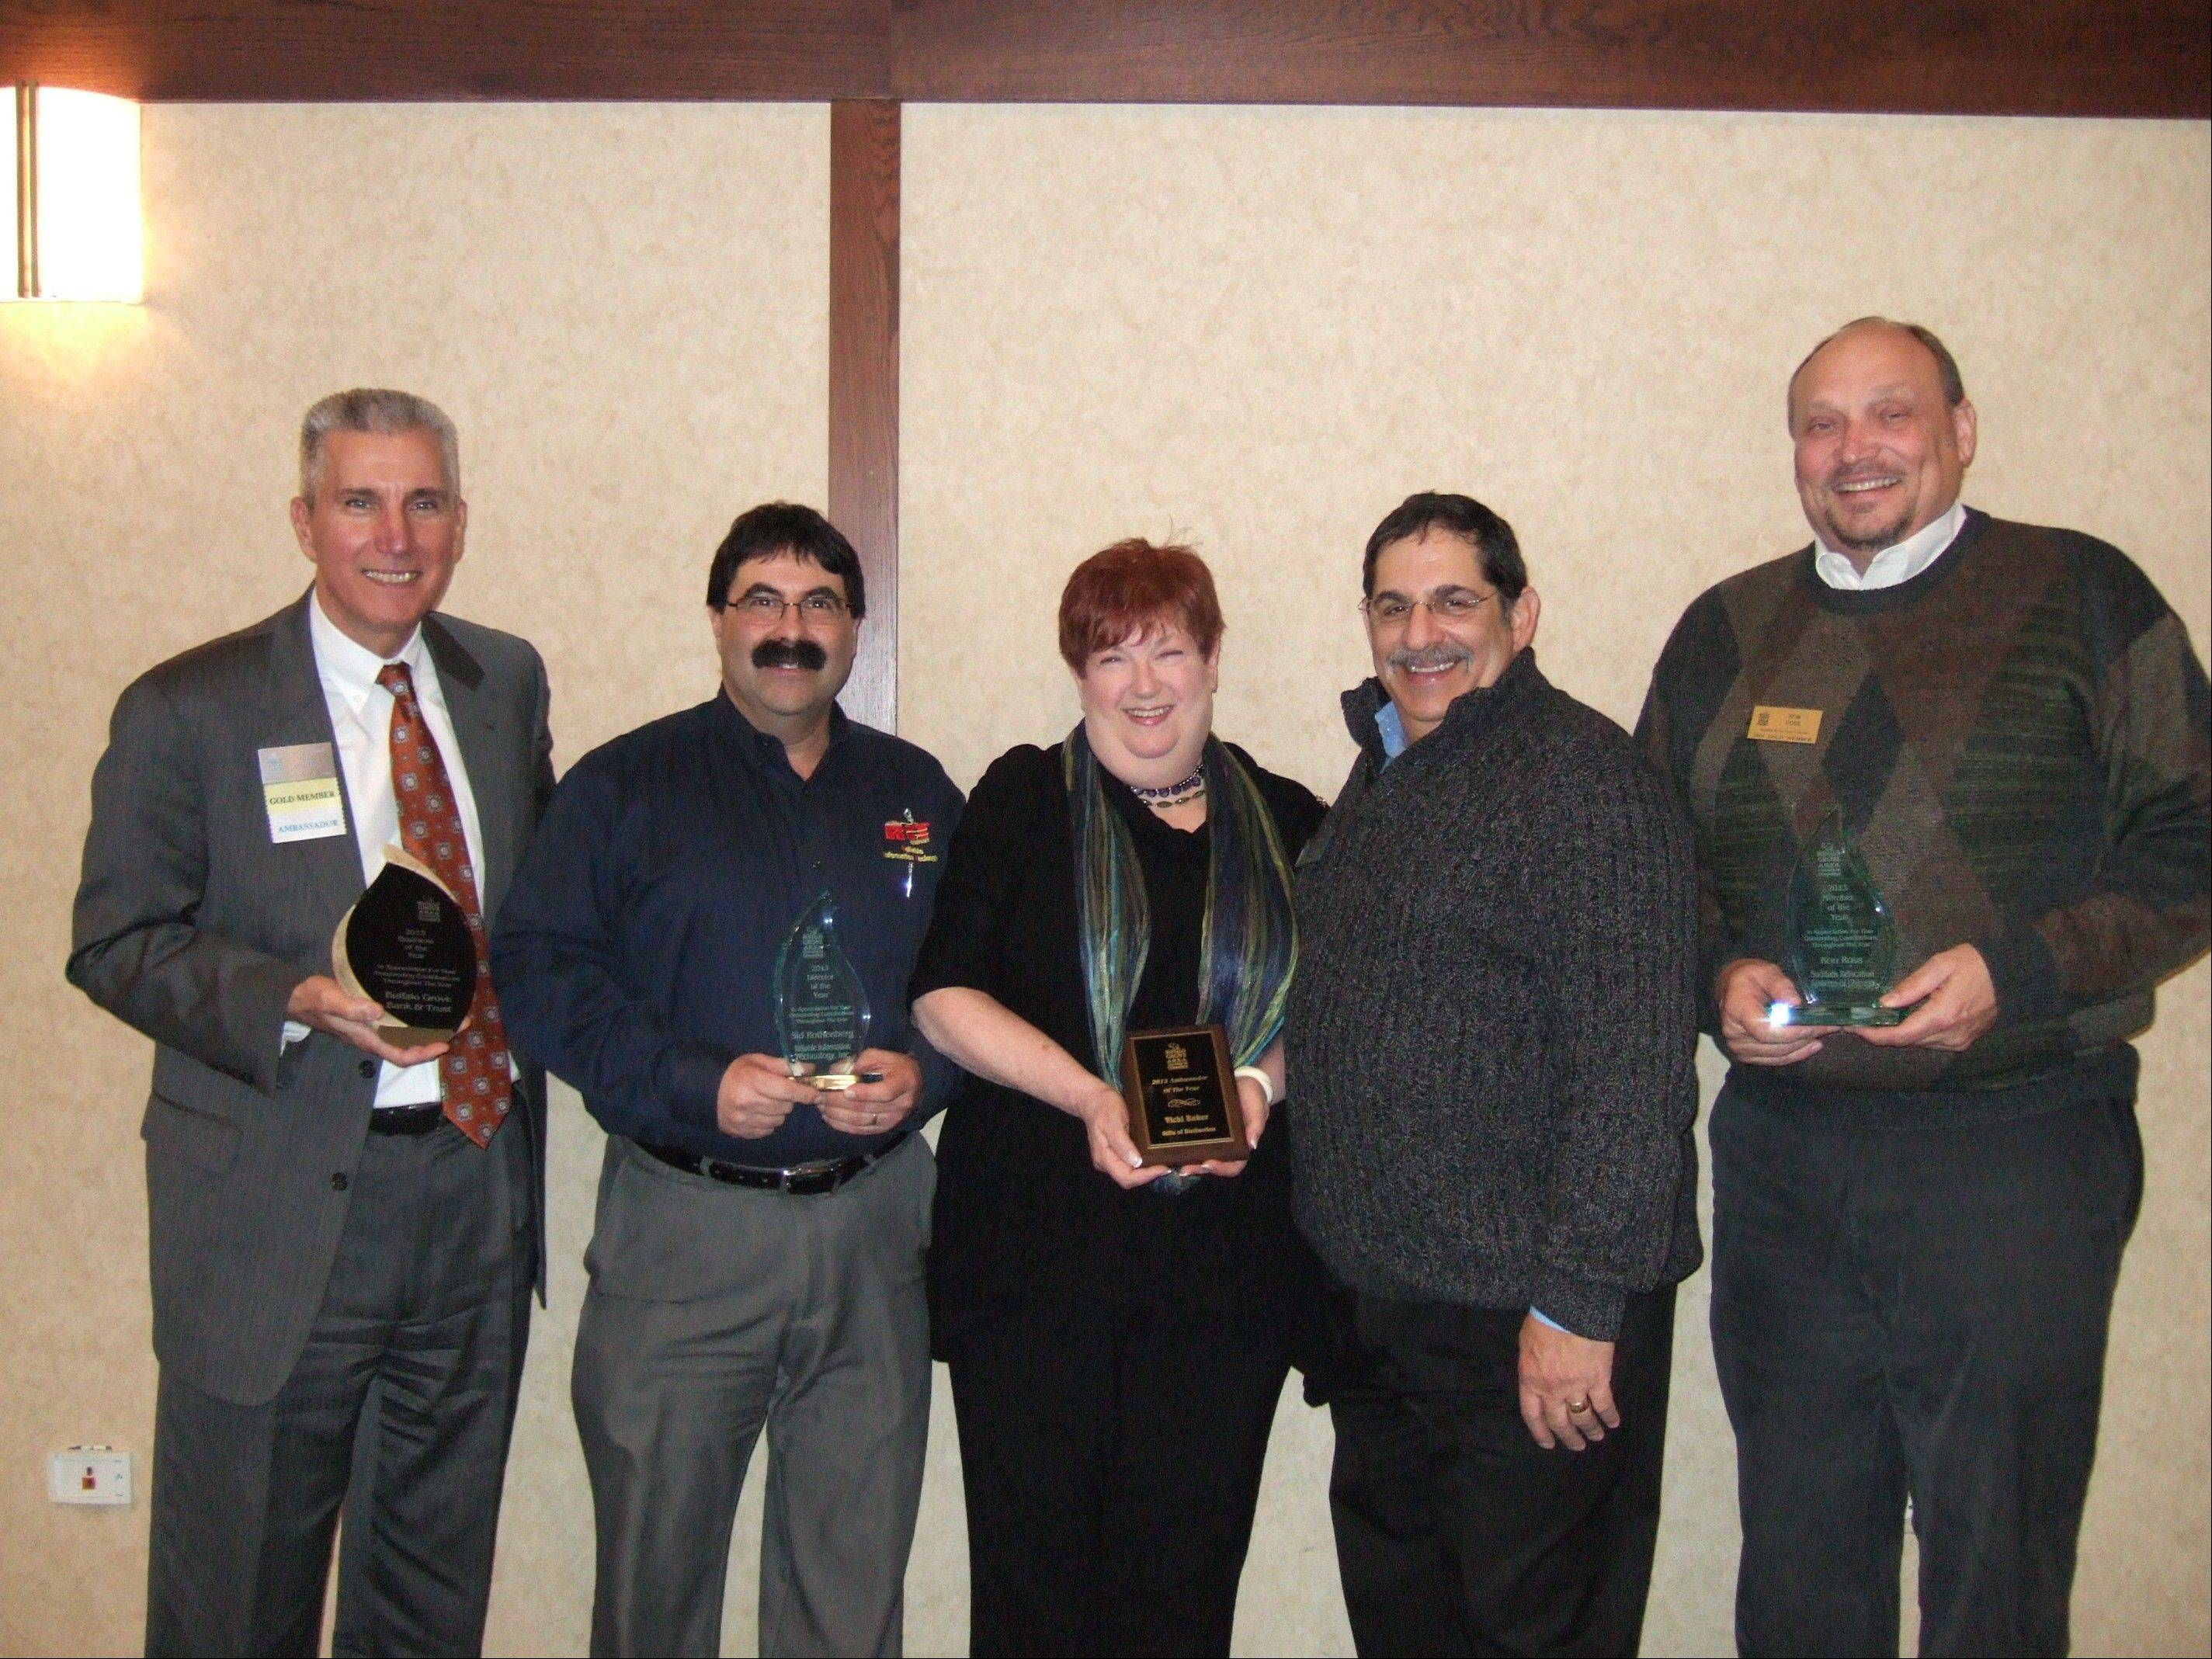 From left: Mike Abruzzini, who accepted the Business of the Year Award on behalf of Buffalo Grove Bank & Trust; Sid Rothenberg; Vicki Baker; Chamber Board President Scott Fishkin; and Ron Ross.